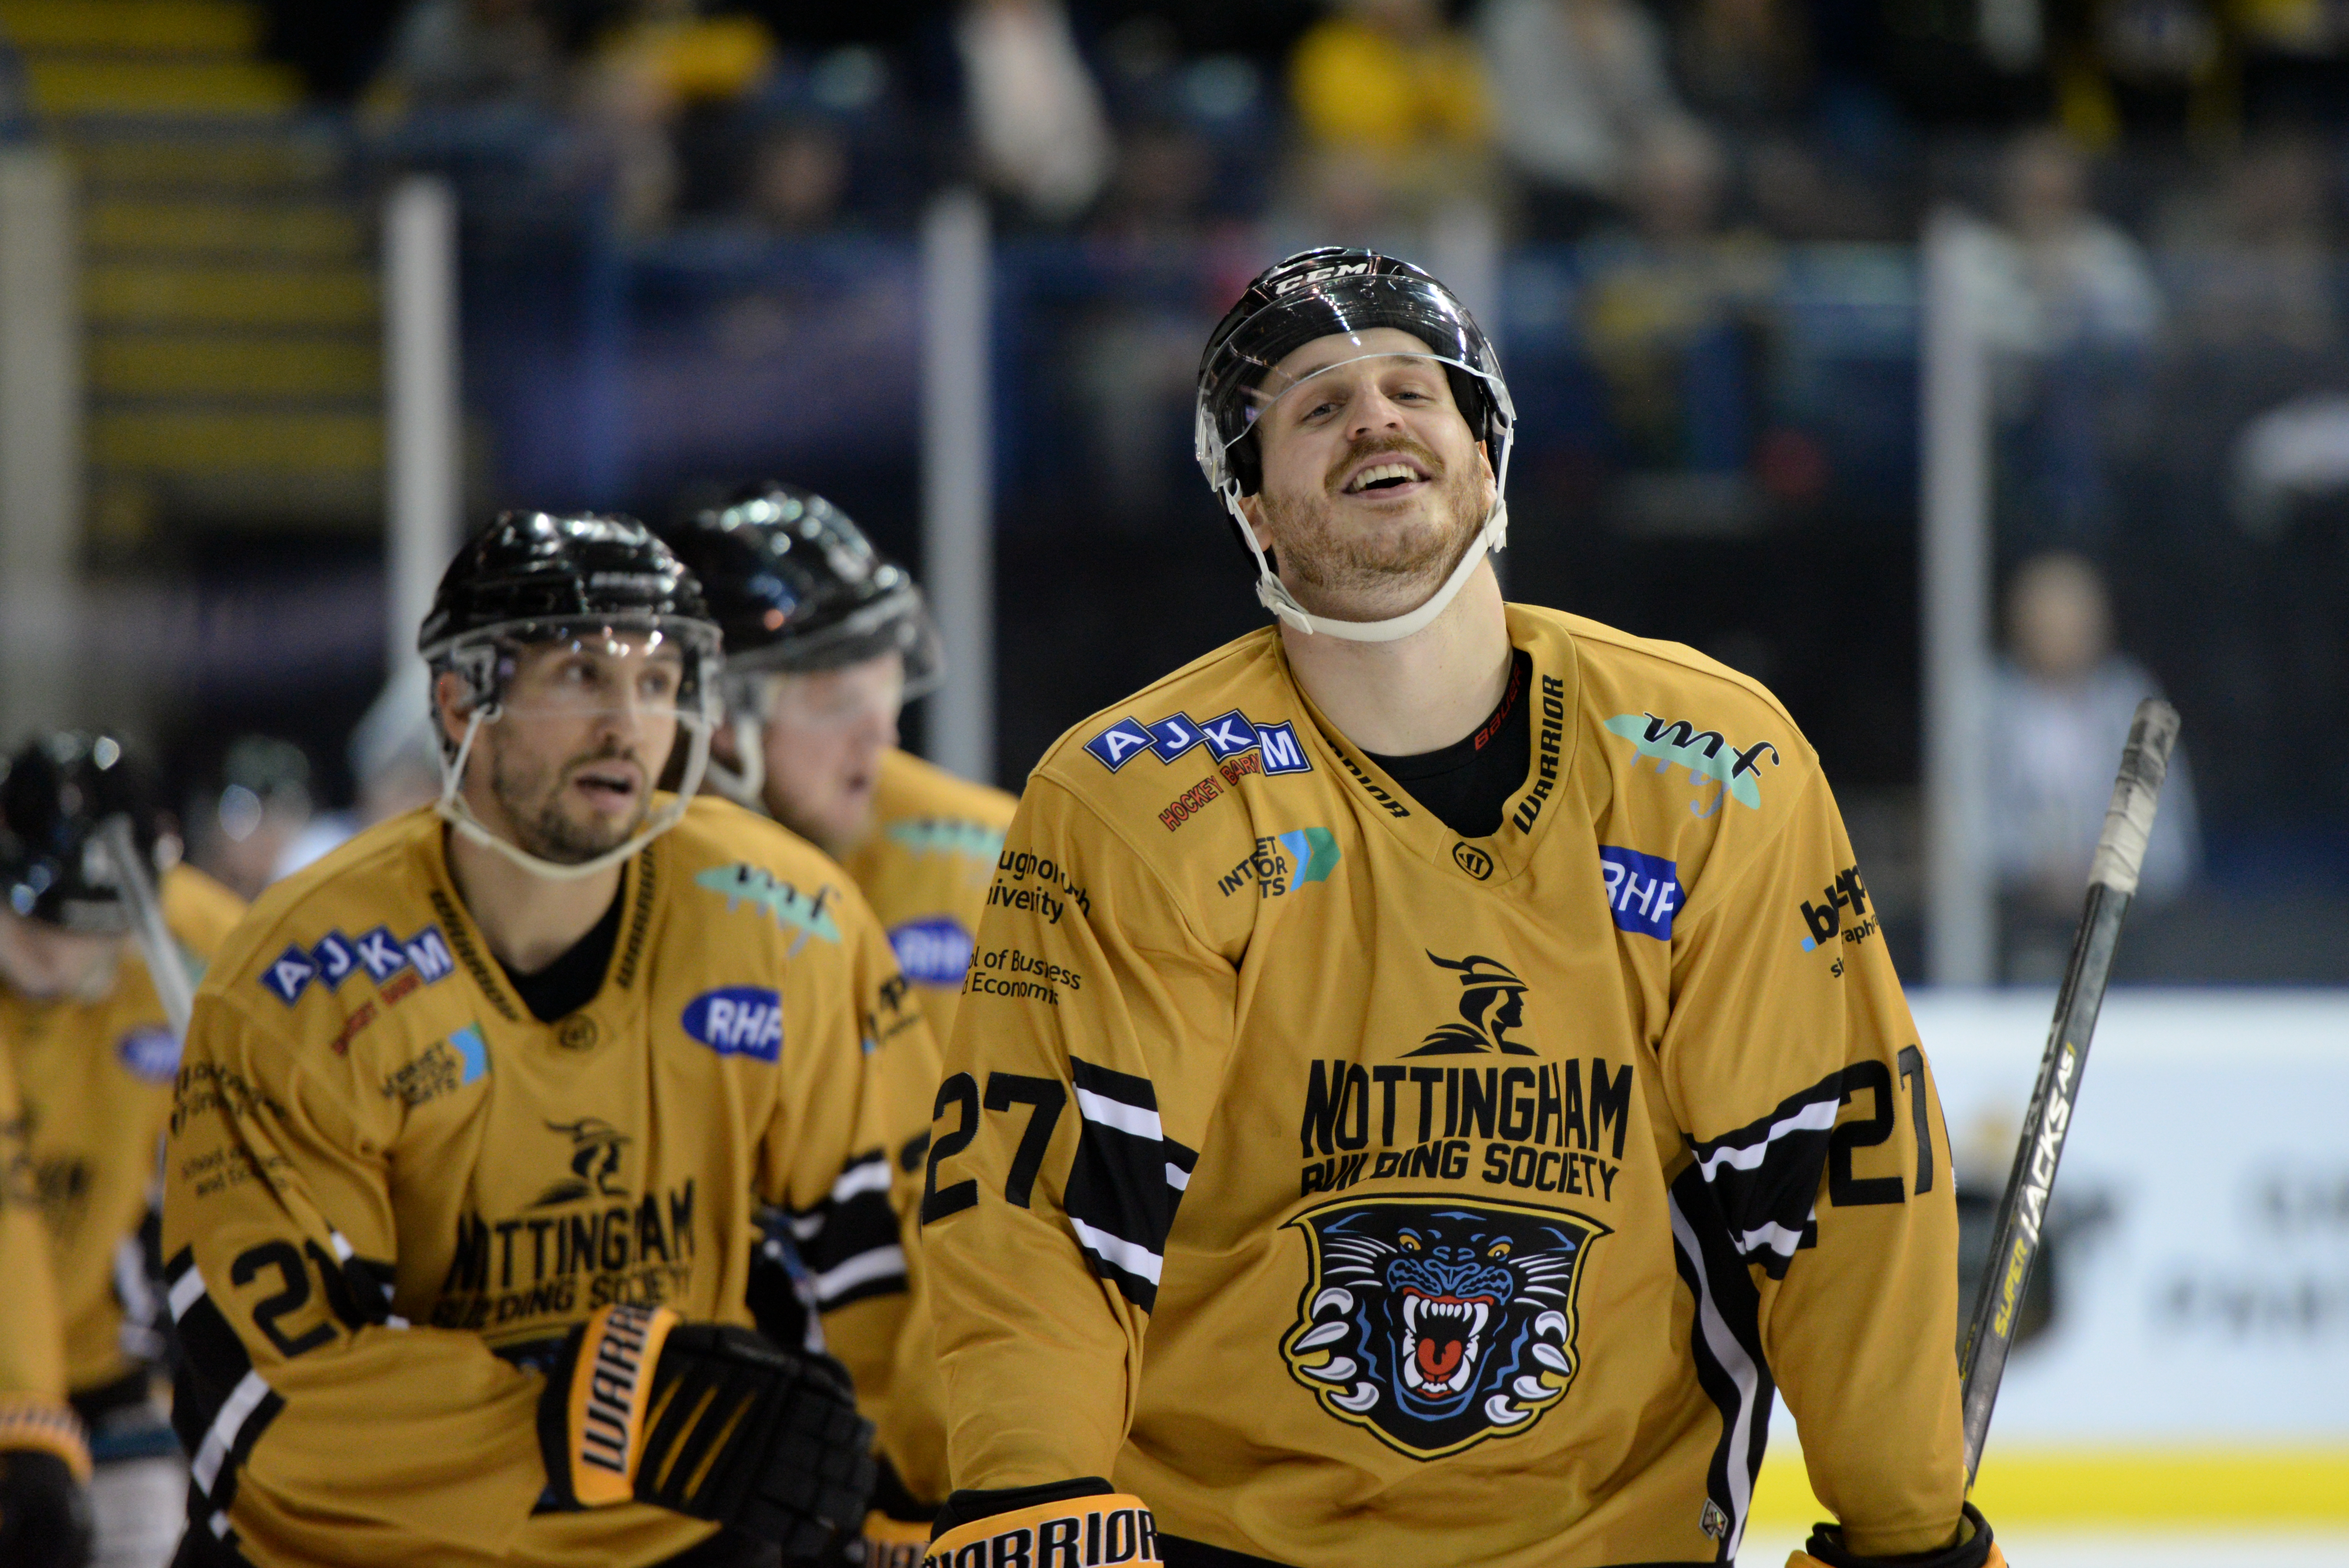 EIHL Player of the Week: Guptill Top Image